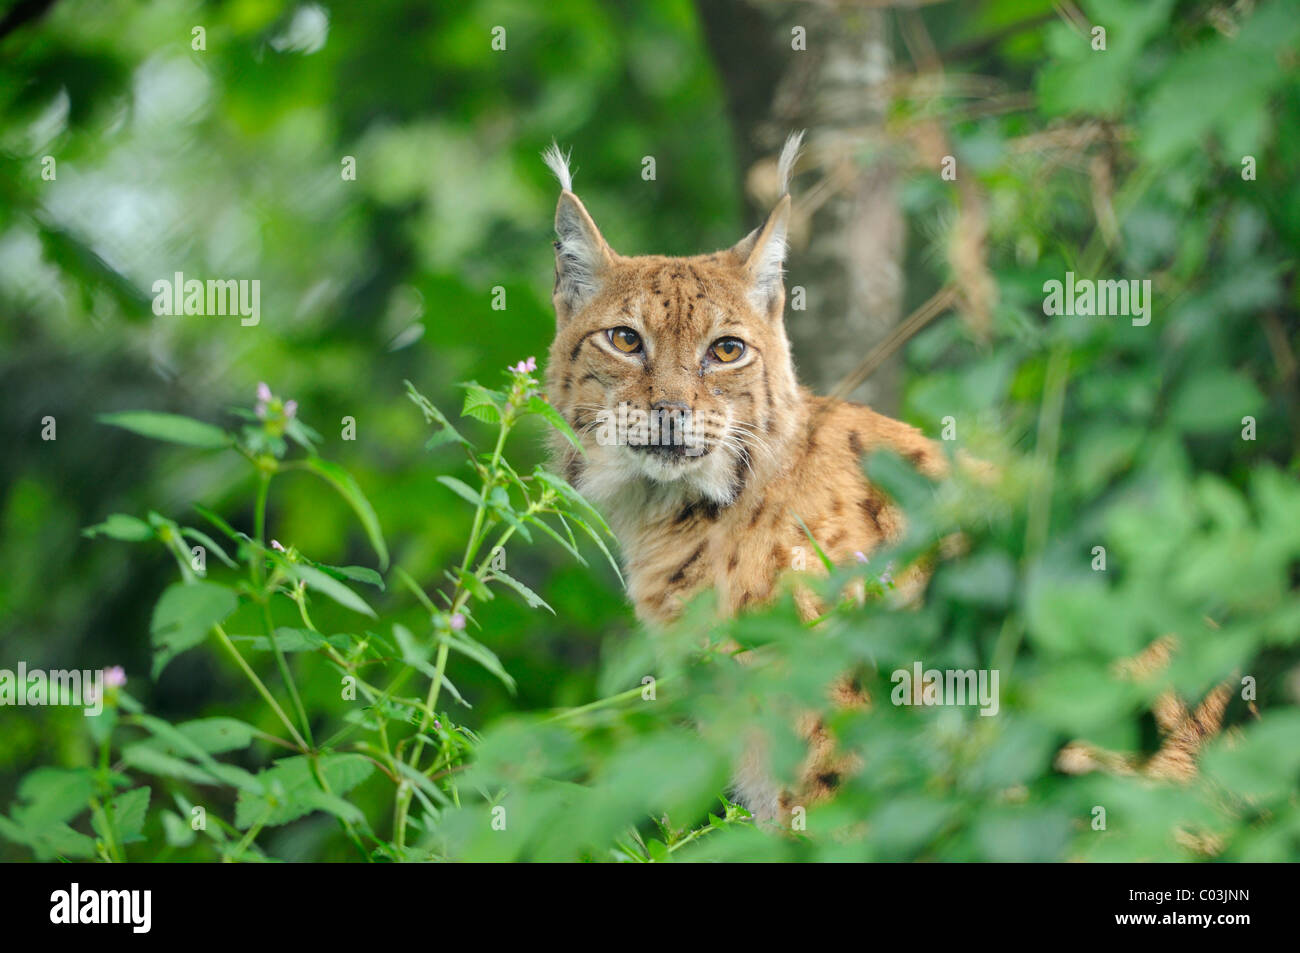 European Lynx (Lynx lynx) looking out from the bushes - Stock Image